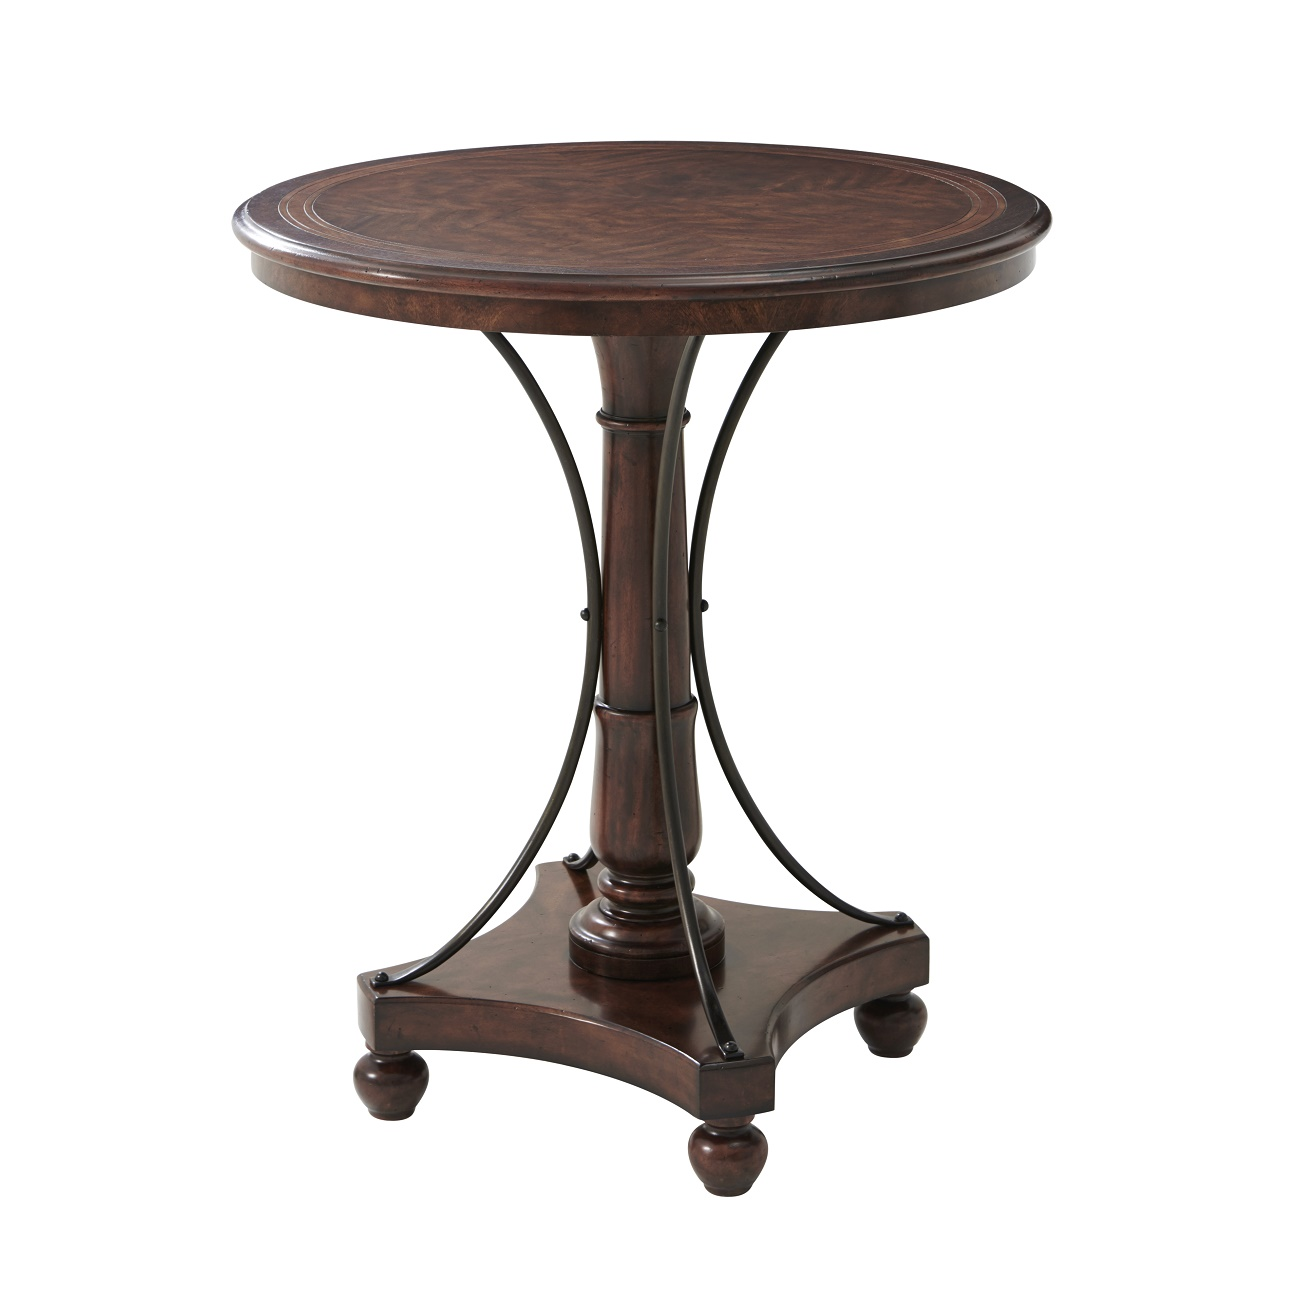 Theodore Alexander, Mahogany Lamp Tables for Sale, Brooklyn, New York